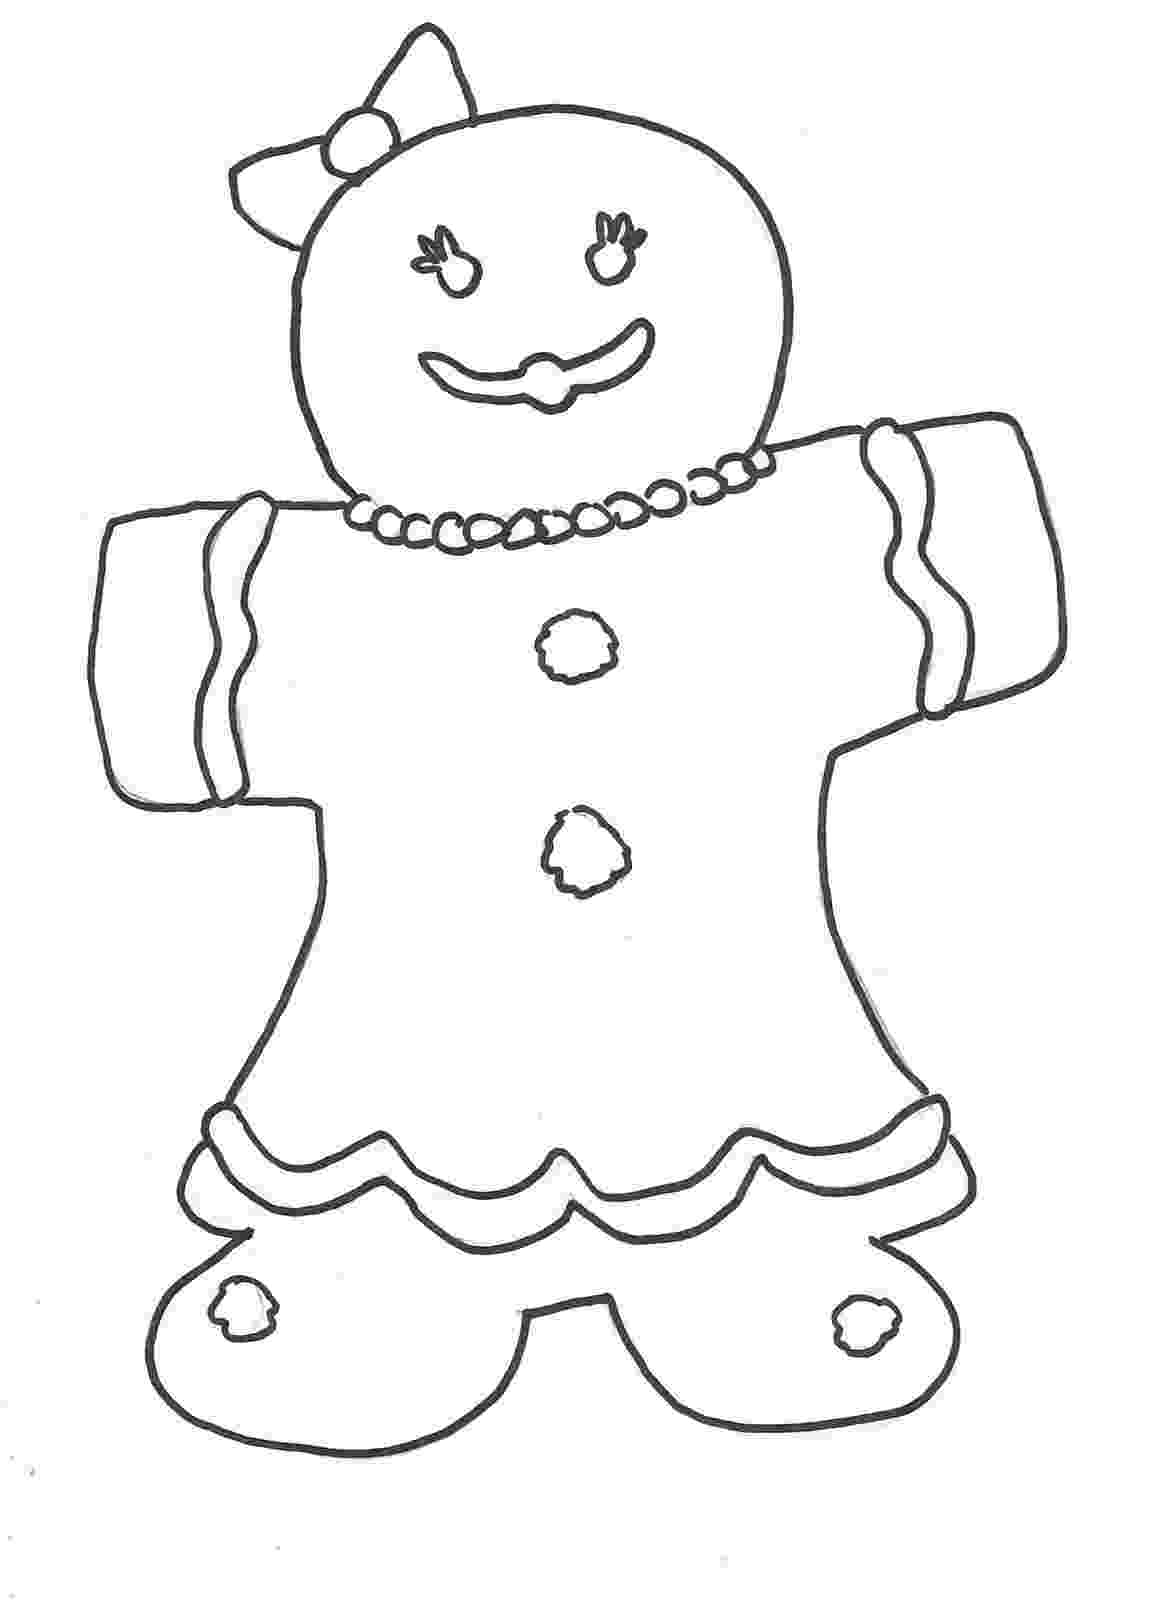 gingerbread coloring sheet squiggle bop coloring gingerbread sheet